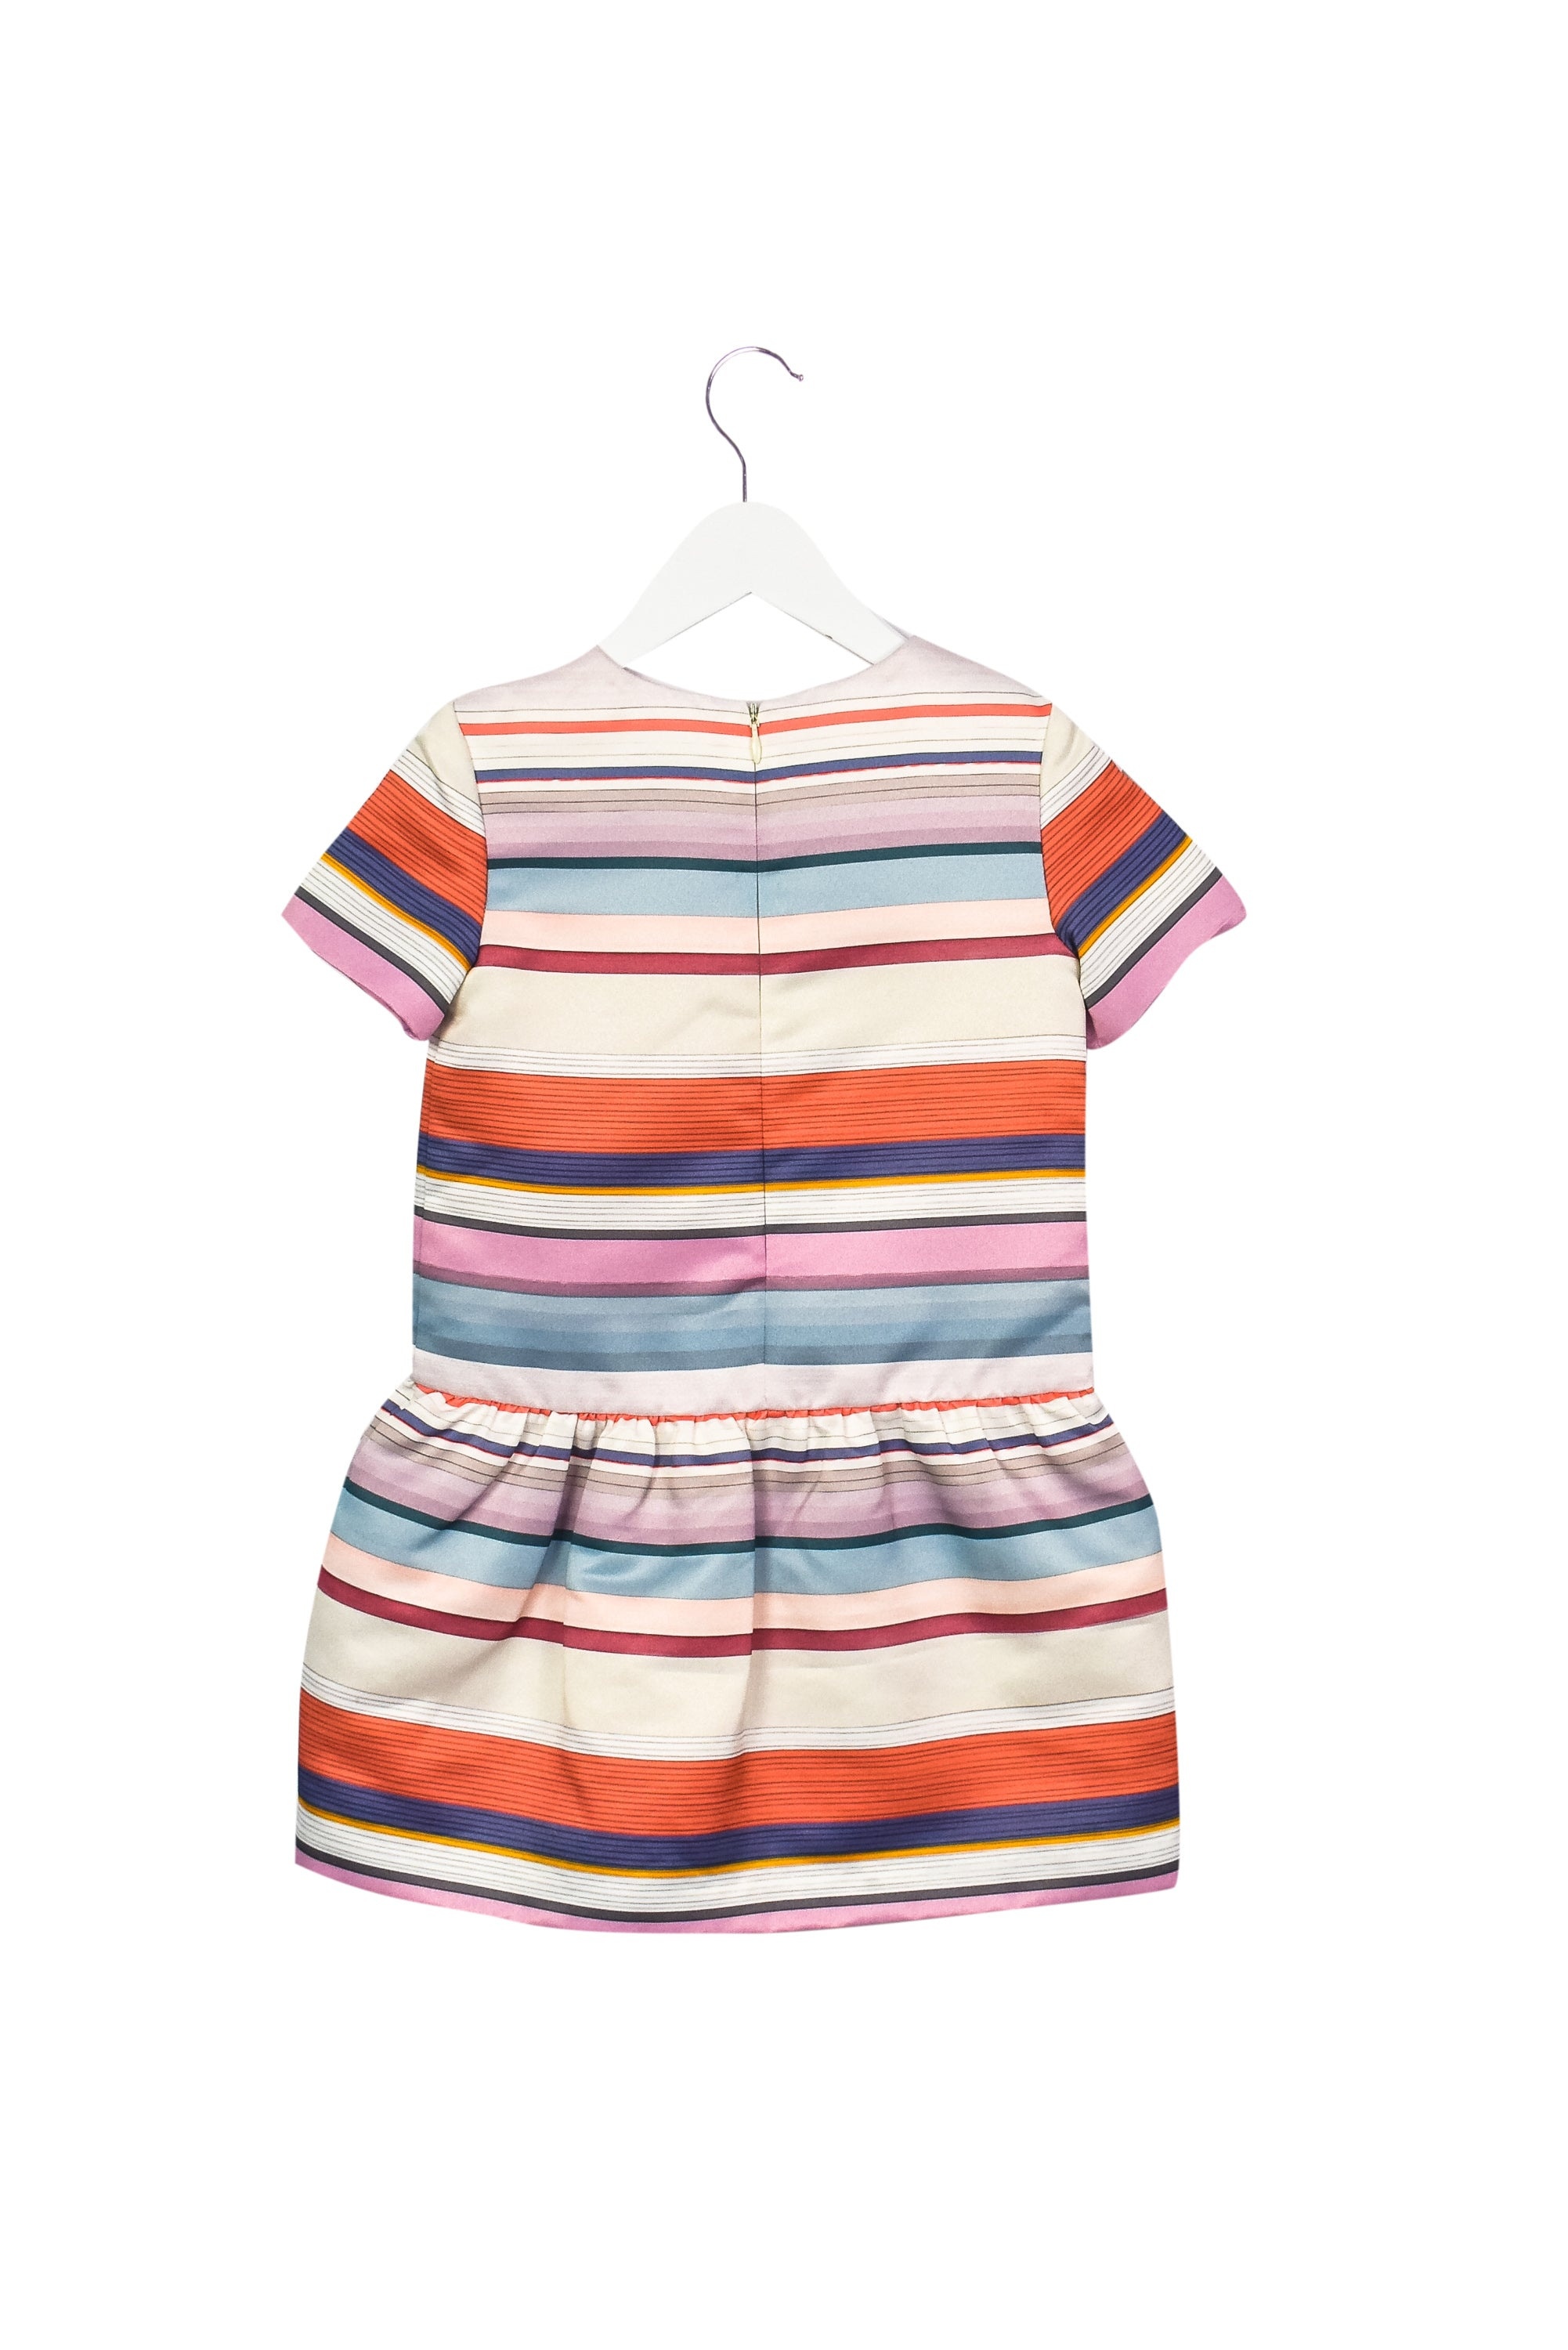 10035340 Paul Smith Kids~Dress 5T at Retykle